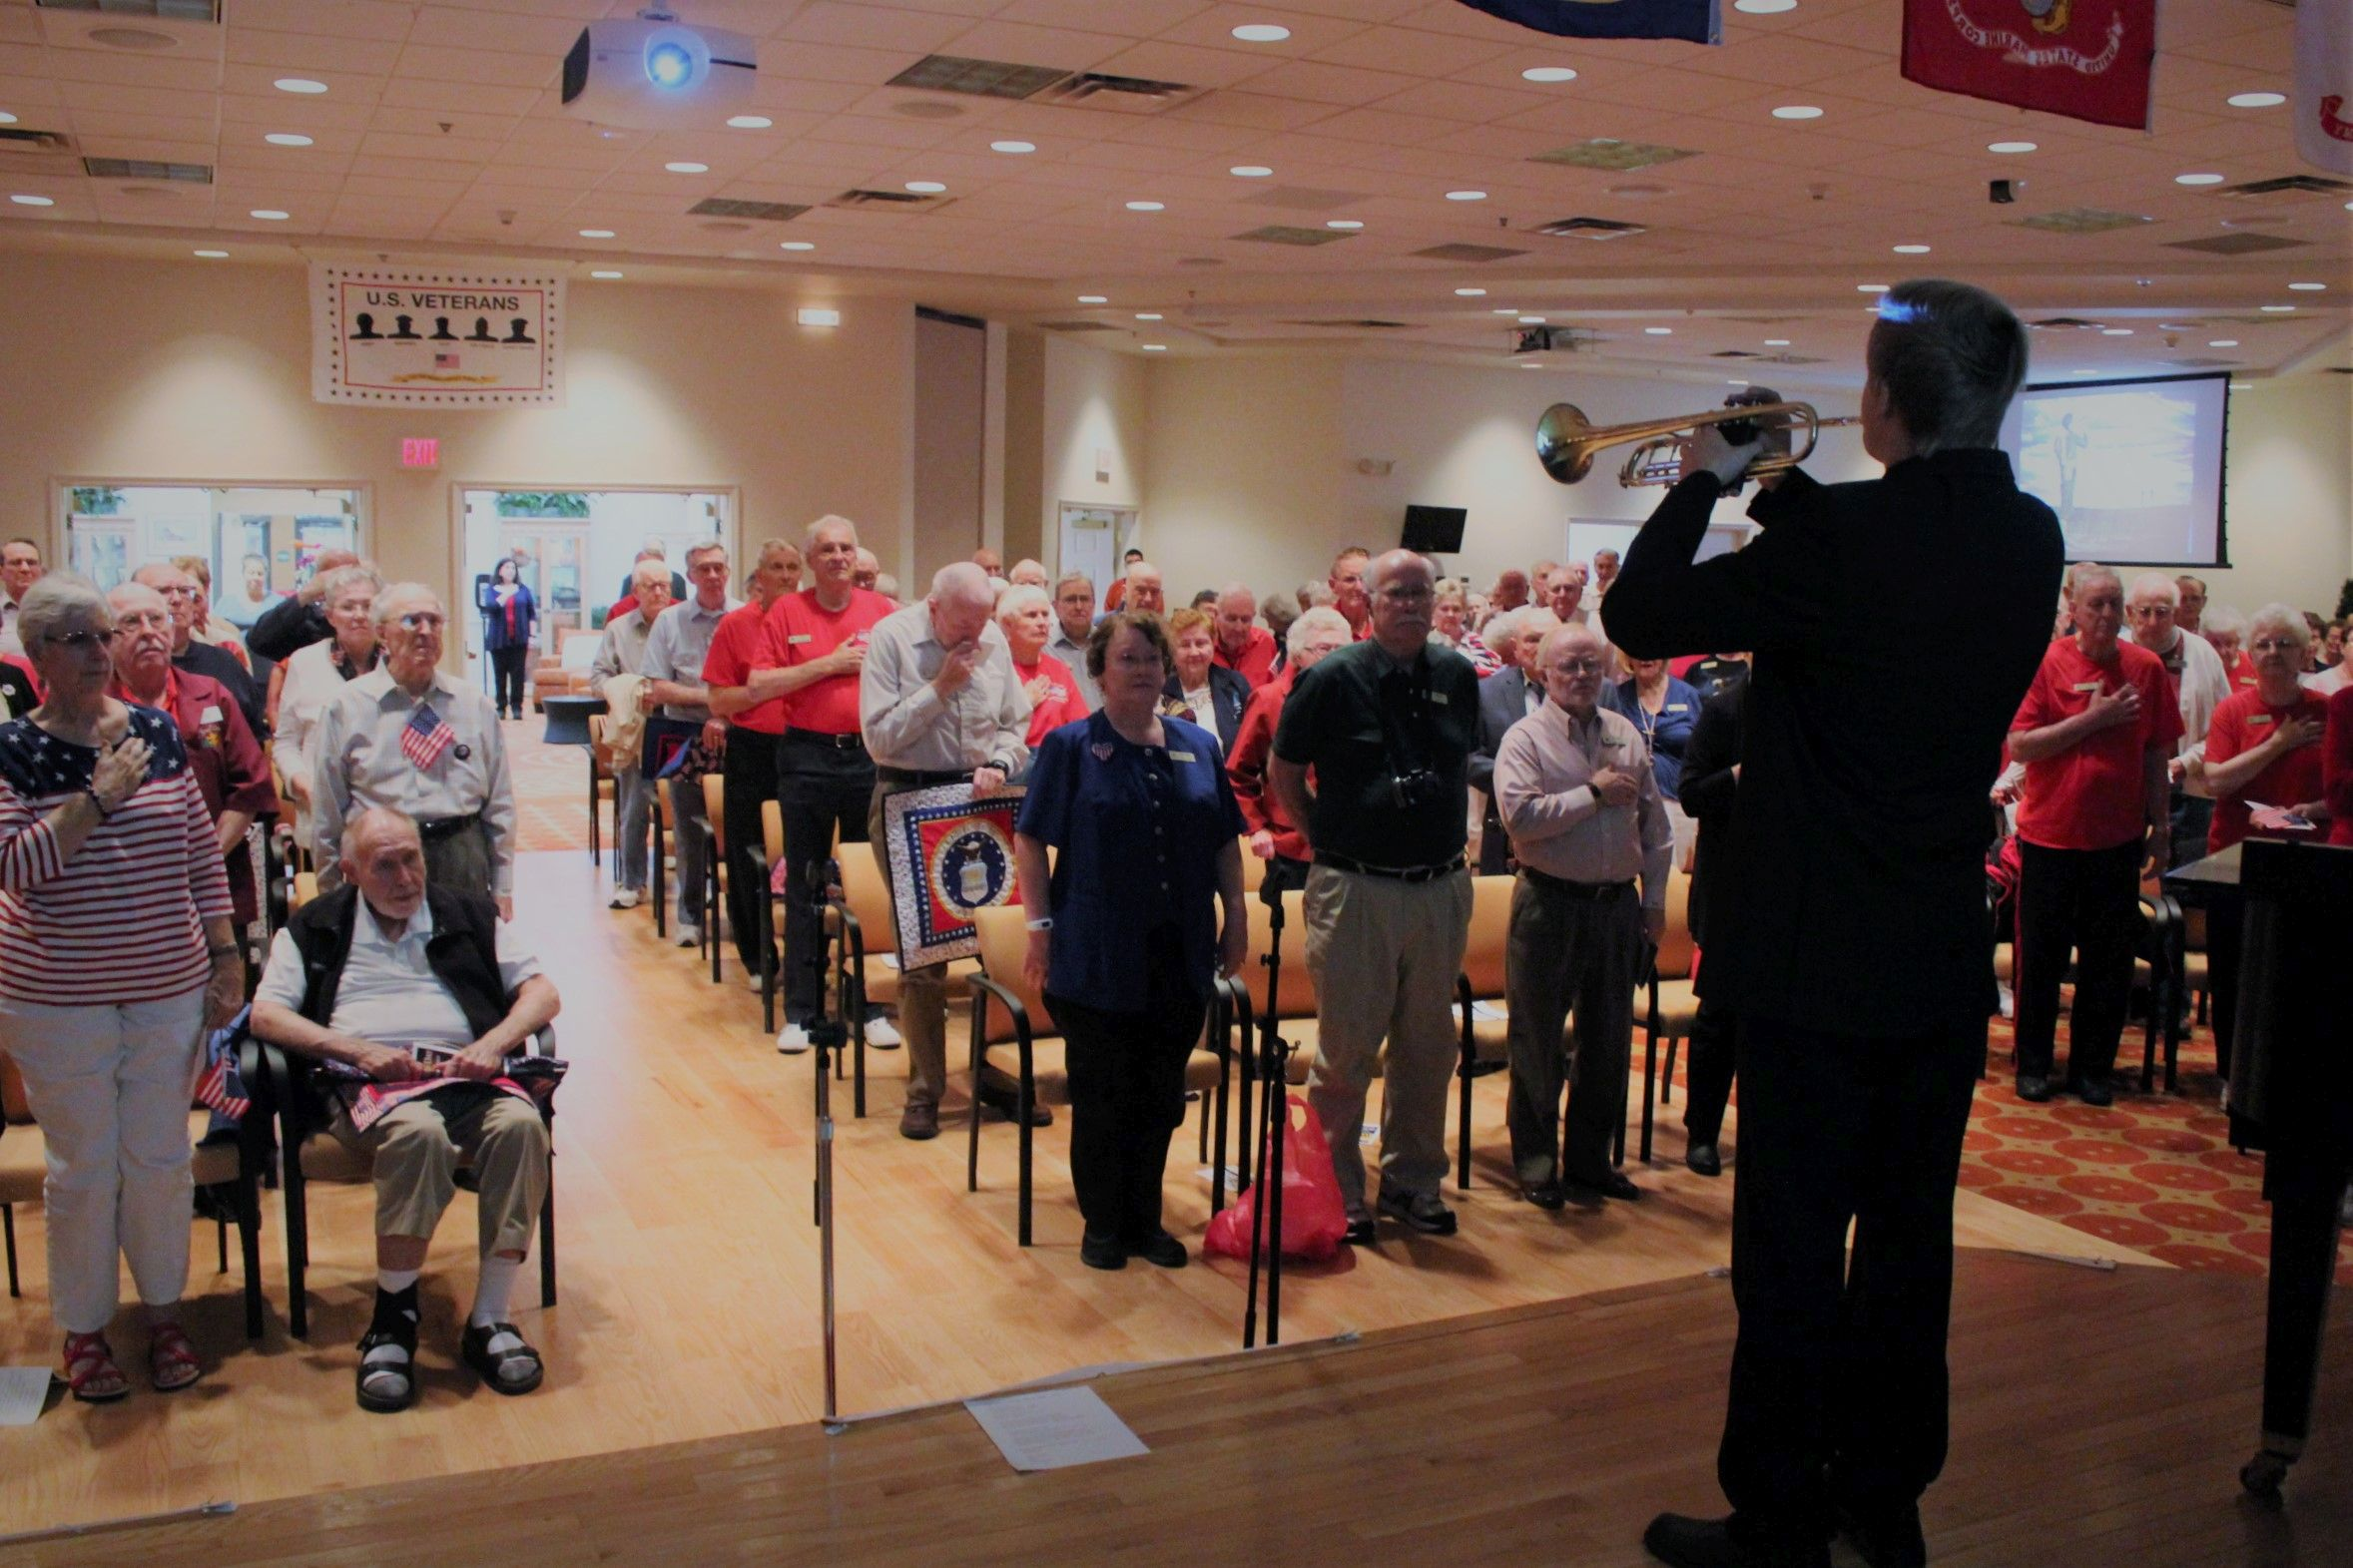 Residents packed the auditorium at Royal Oaks to salute our veterans